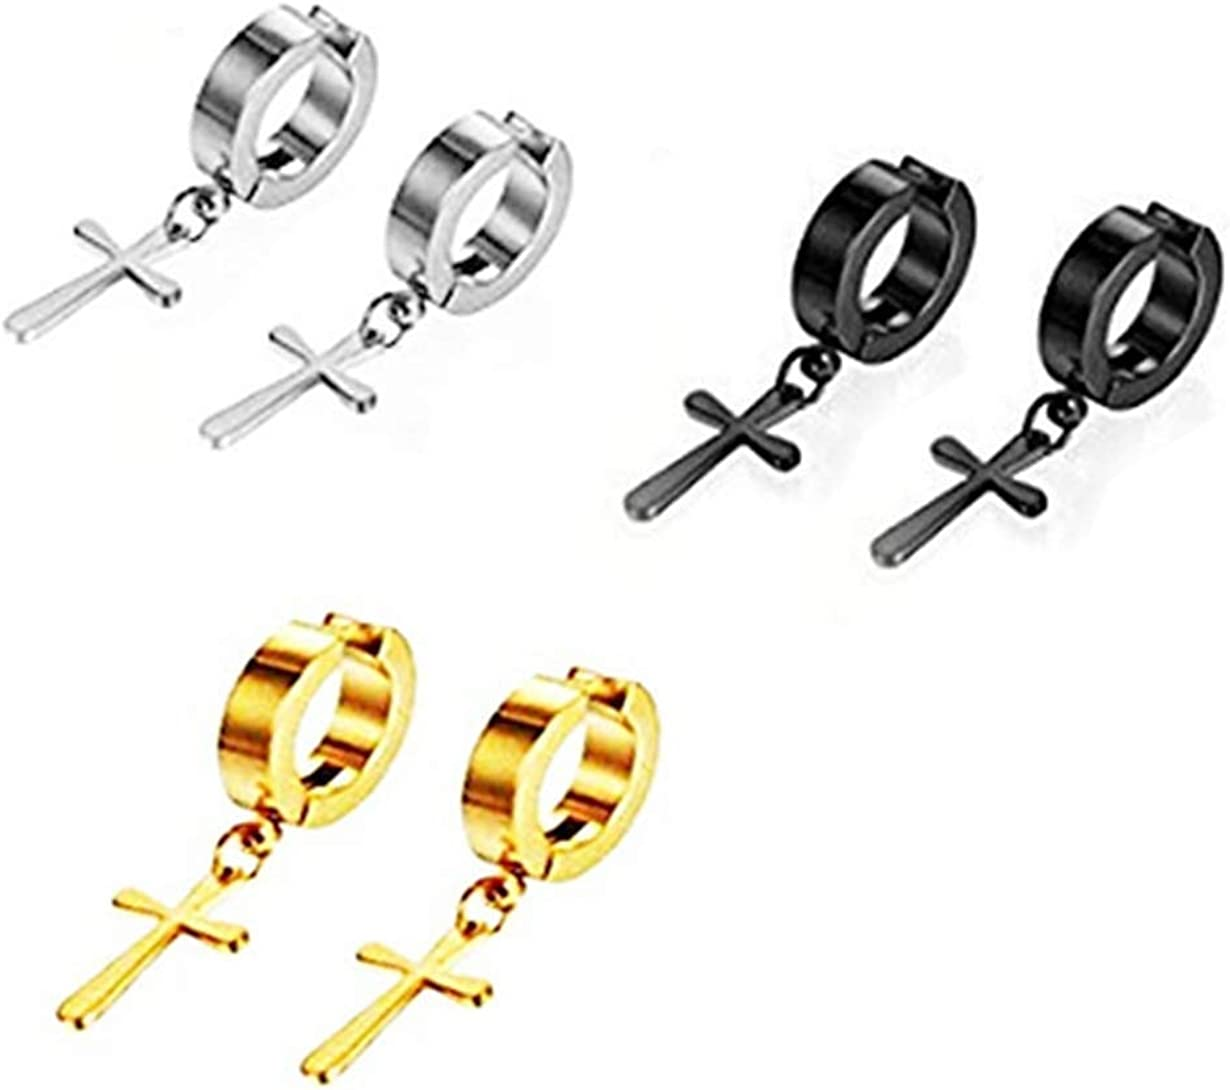 Kjiasiw Stainless Steel Ear Clip Non-piercing Clip on Earrings with Dangling Cross for Men and Women